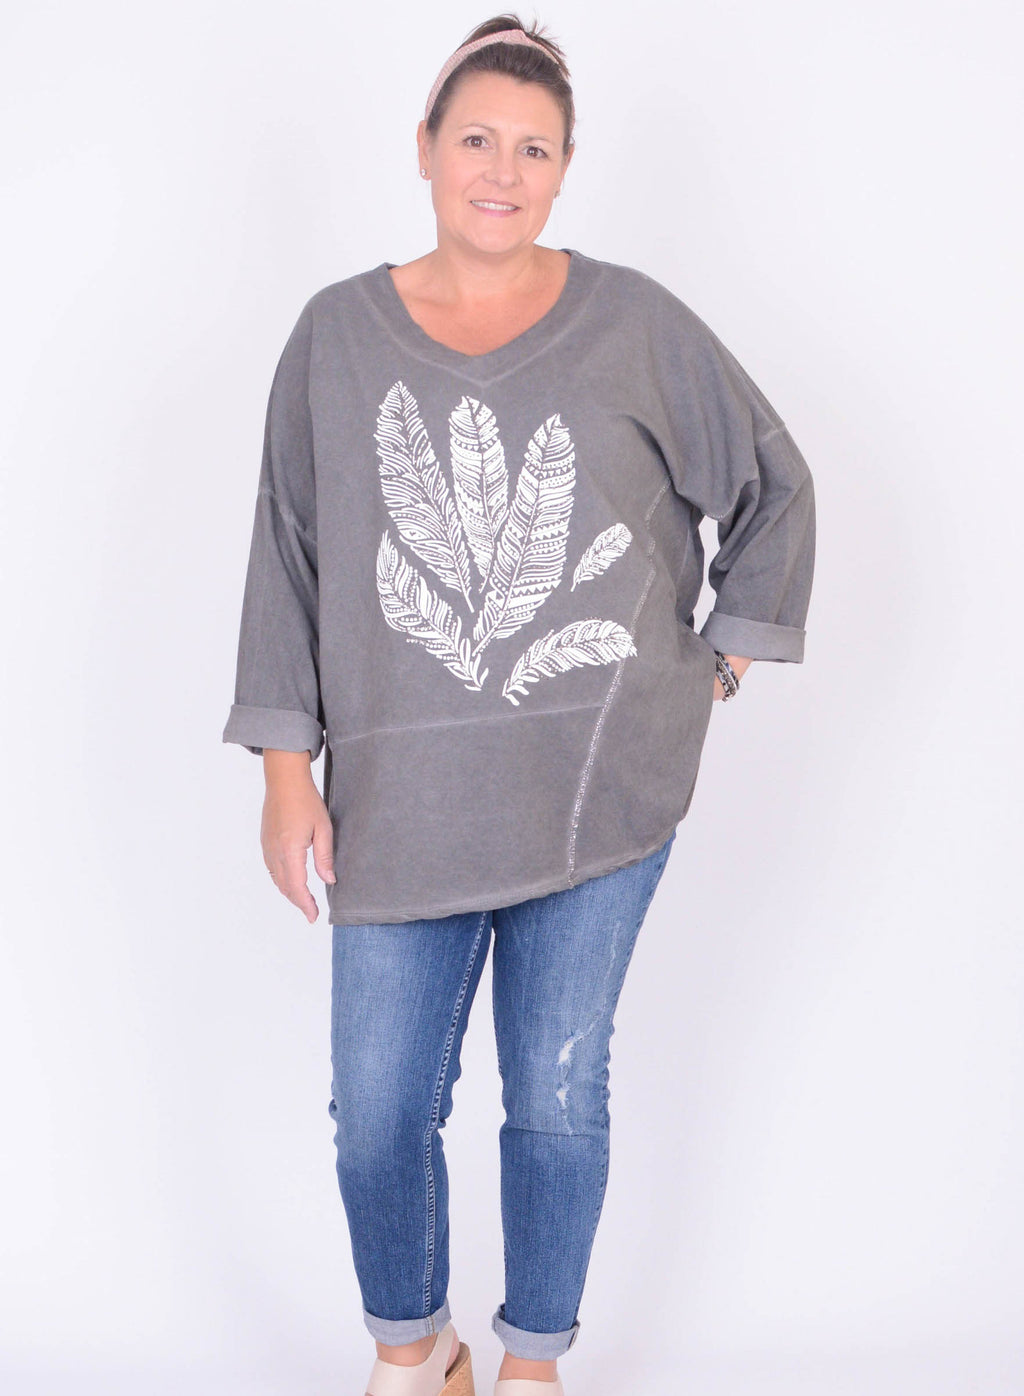 Feather print sweatshirt - 8021 - Pure Plus Clothing